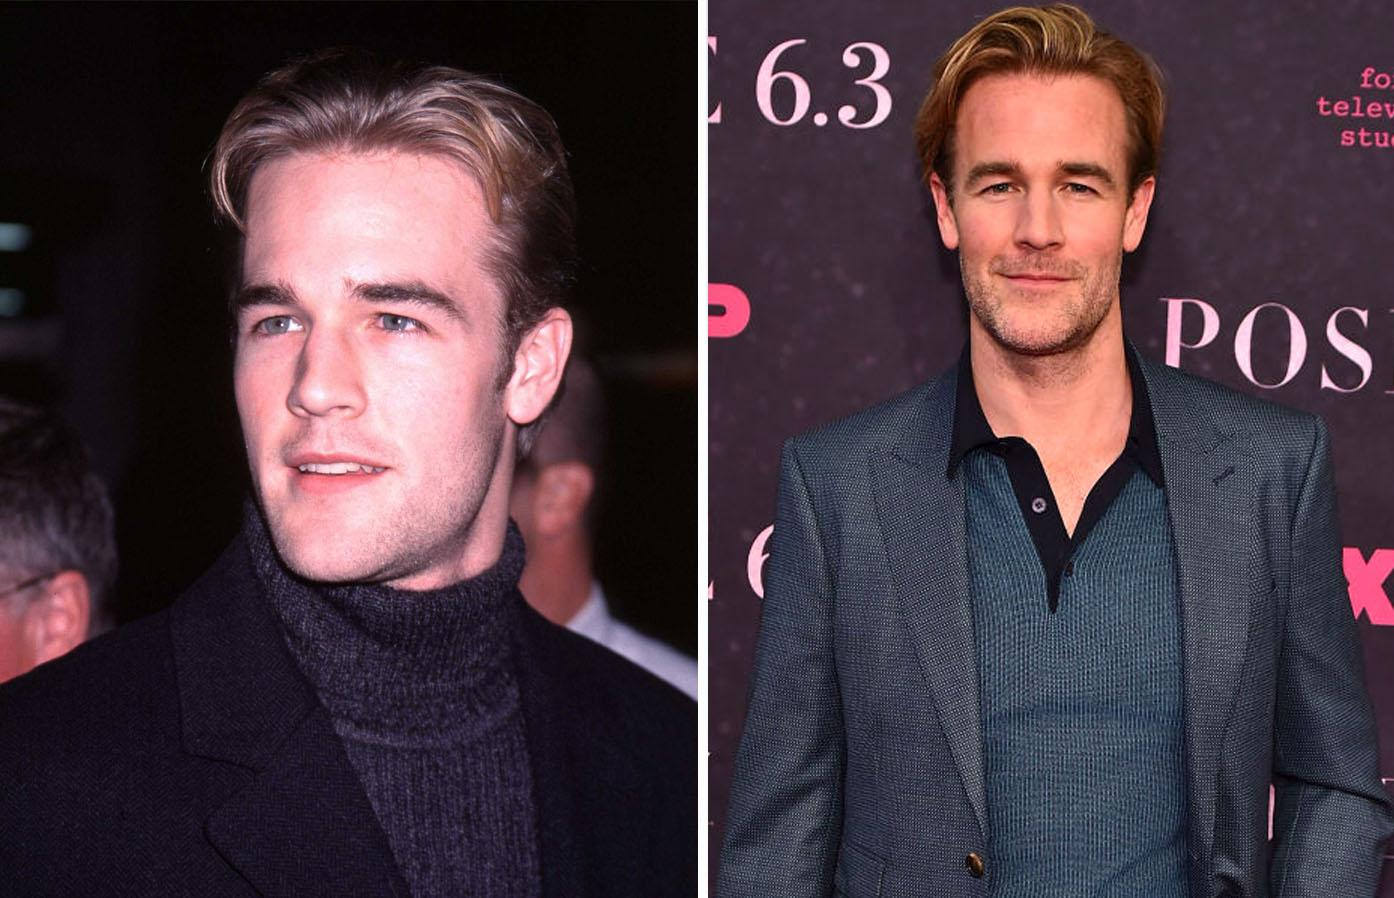 james-van-der-beek-now-1540924777240-1540924779094.jpg